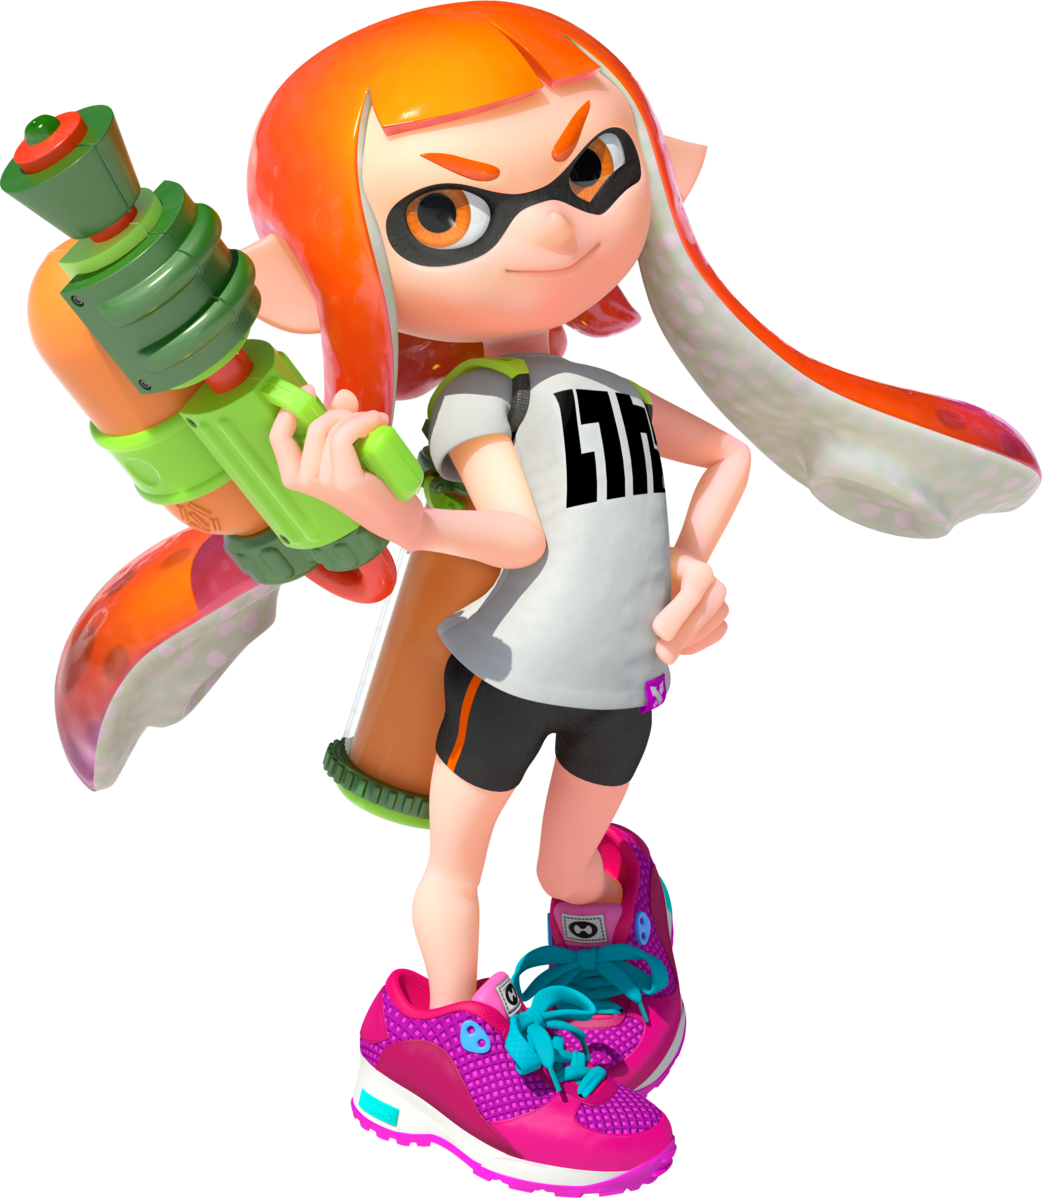 Inkling (Splatoon) is Incredibly on-trend with the stripped biker shorts and chunky 90s sneakers -